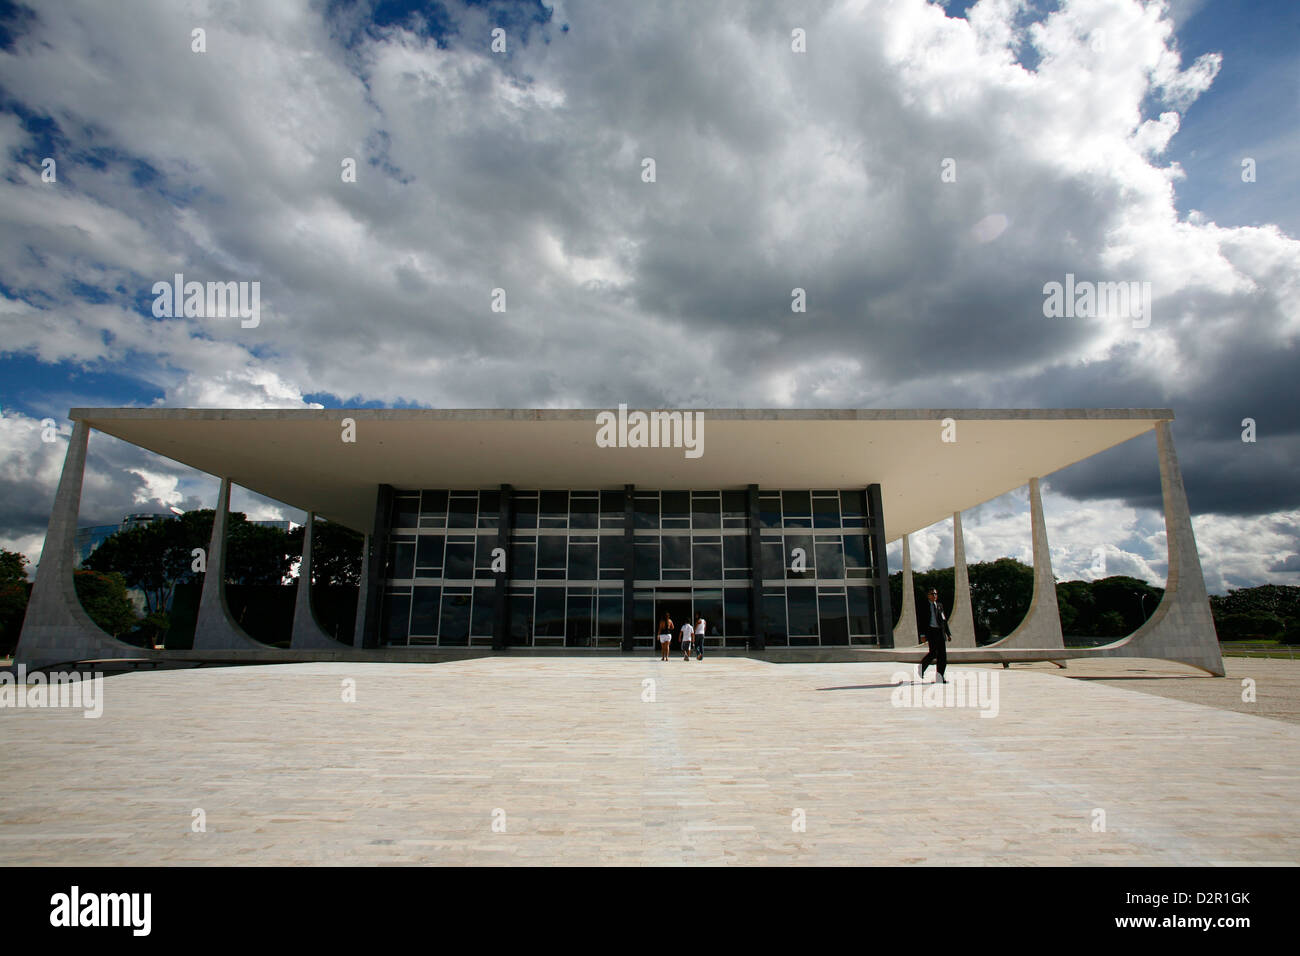 Supremo Tribunal Federal (Supreme Federal Tribunal), Brasilia, UNESCO World Heritage Site, Brazil, South America - Stock Image